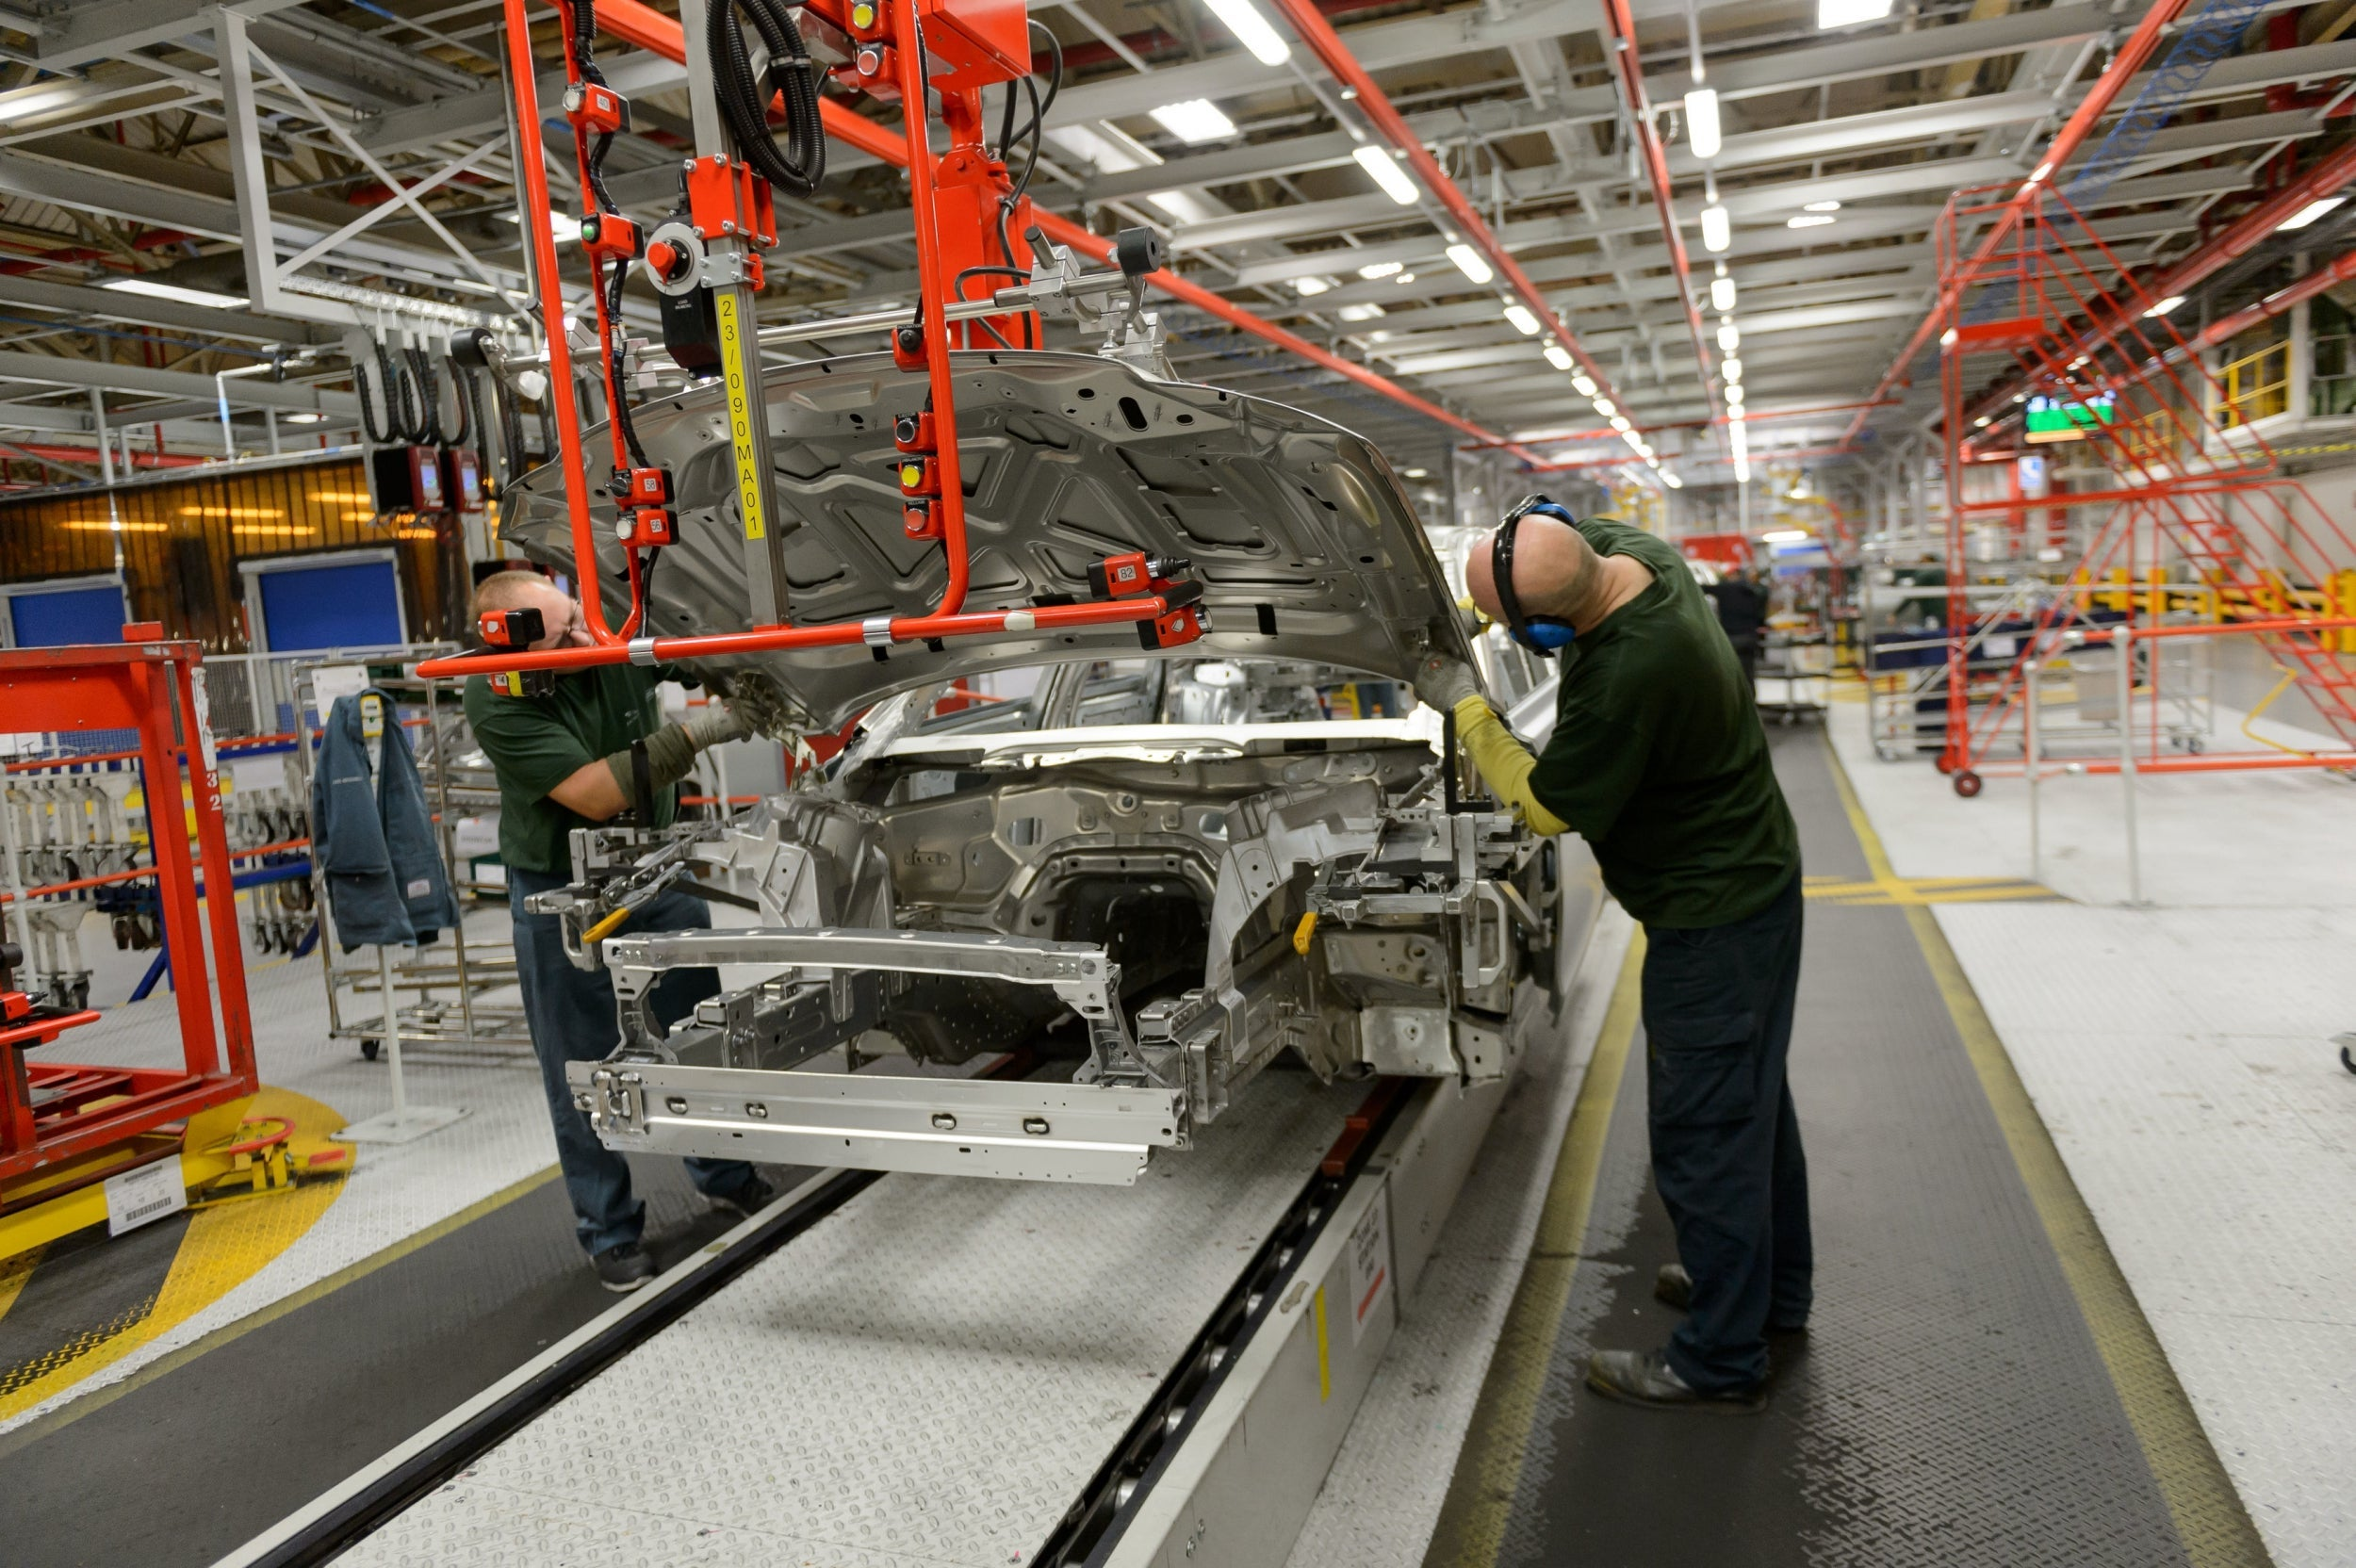 Business news - live: Economy shrinks in August as manufacturing sector slumps